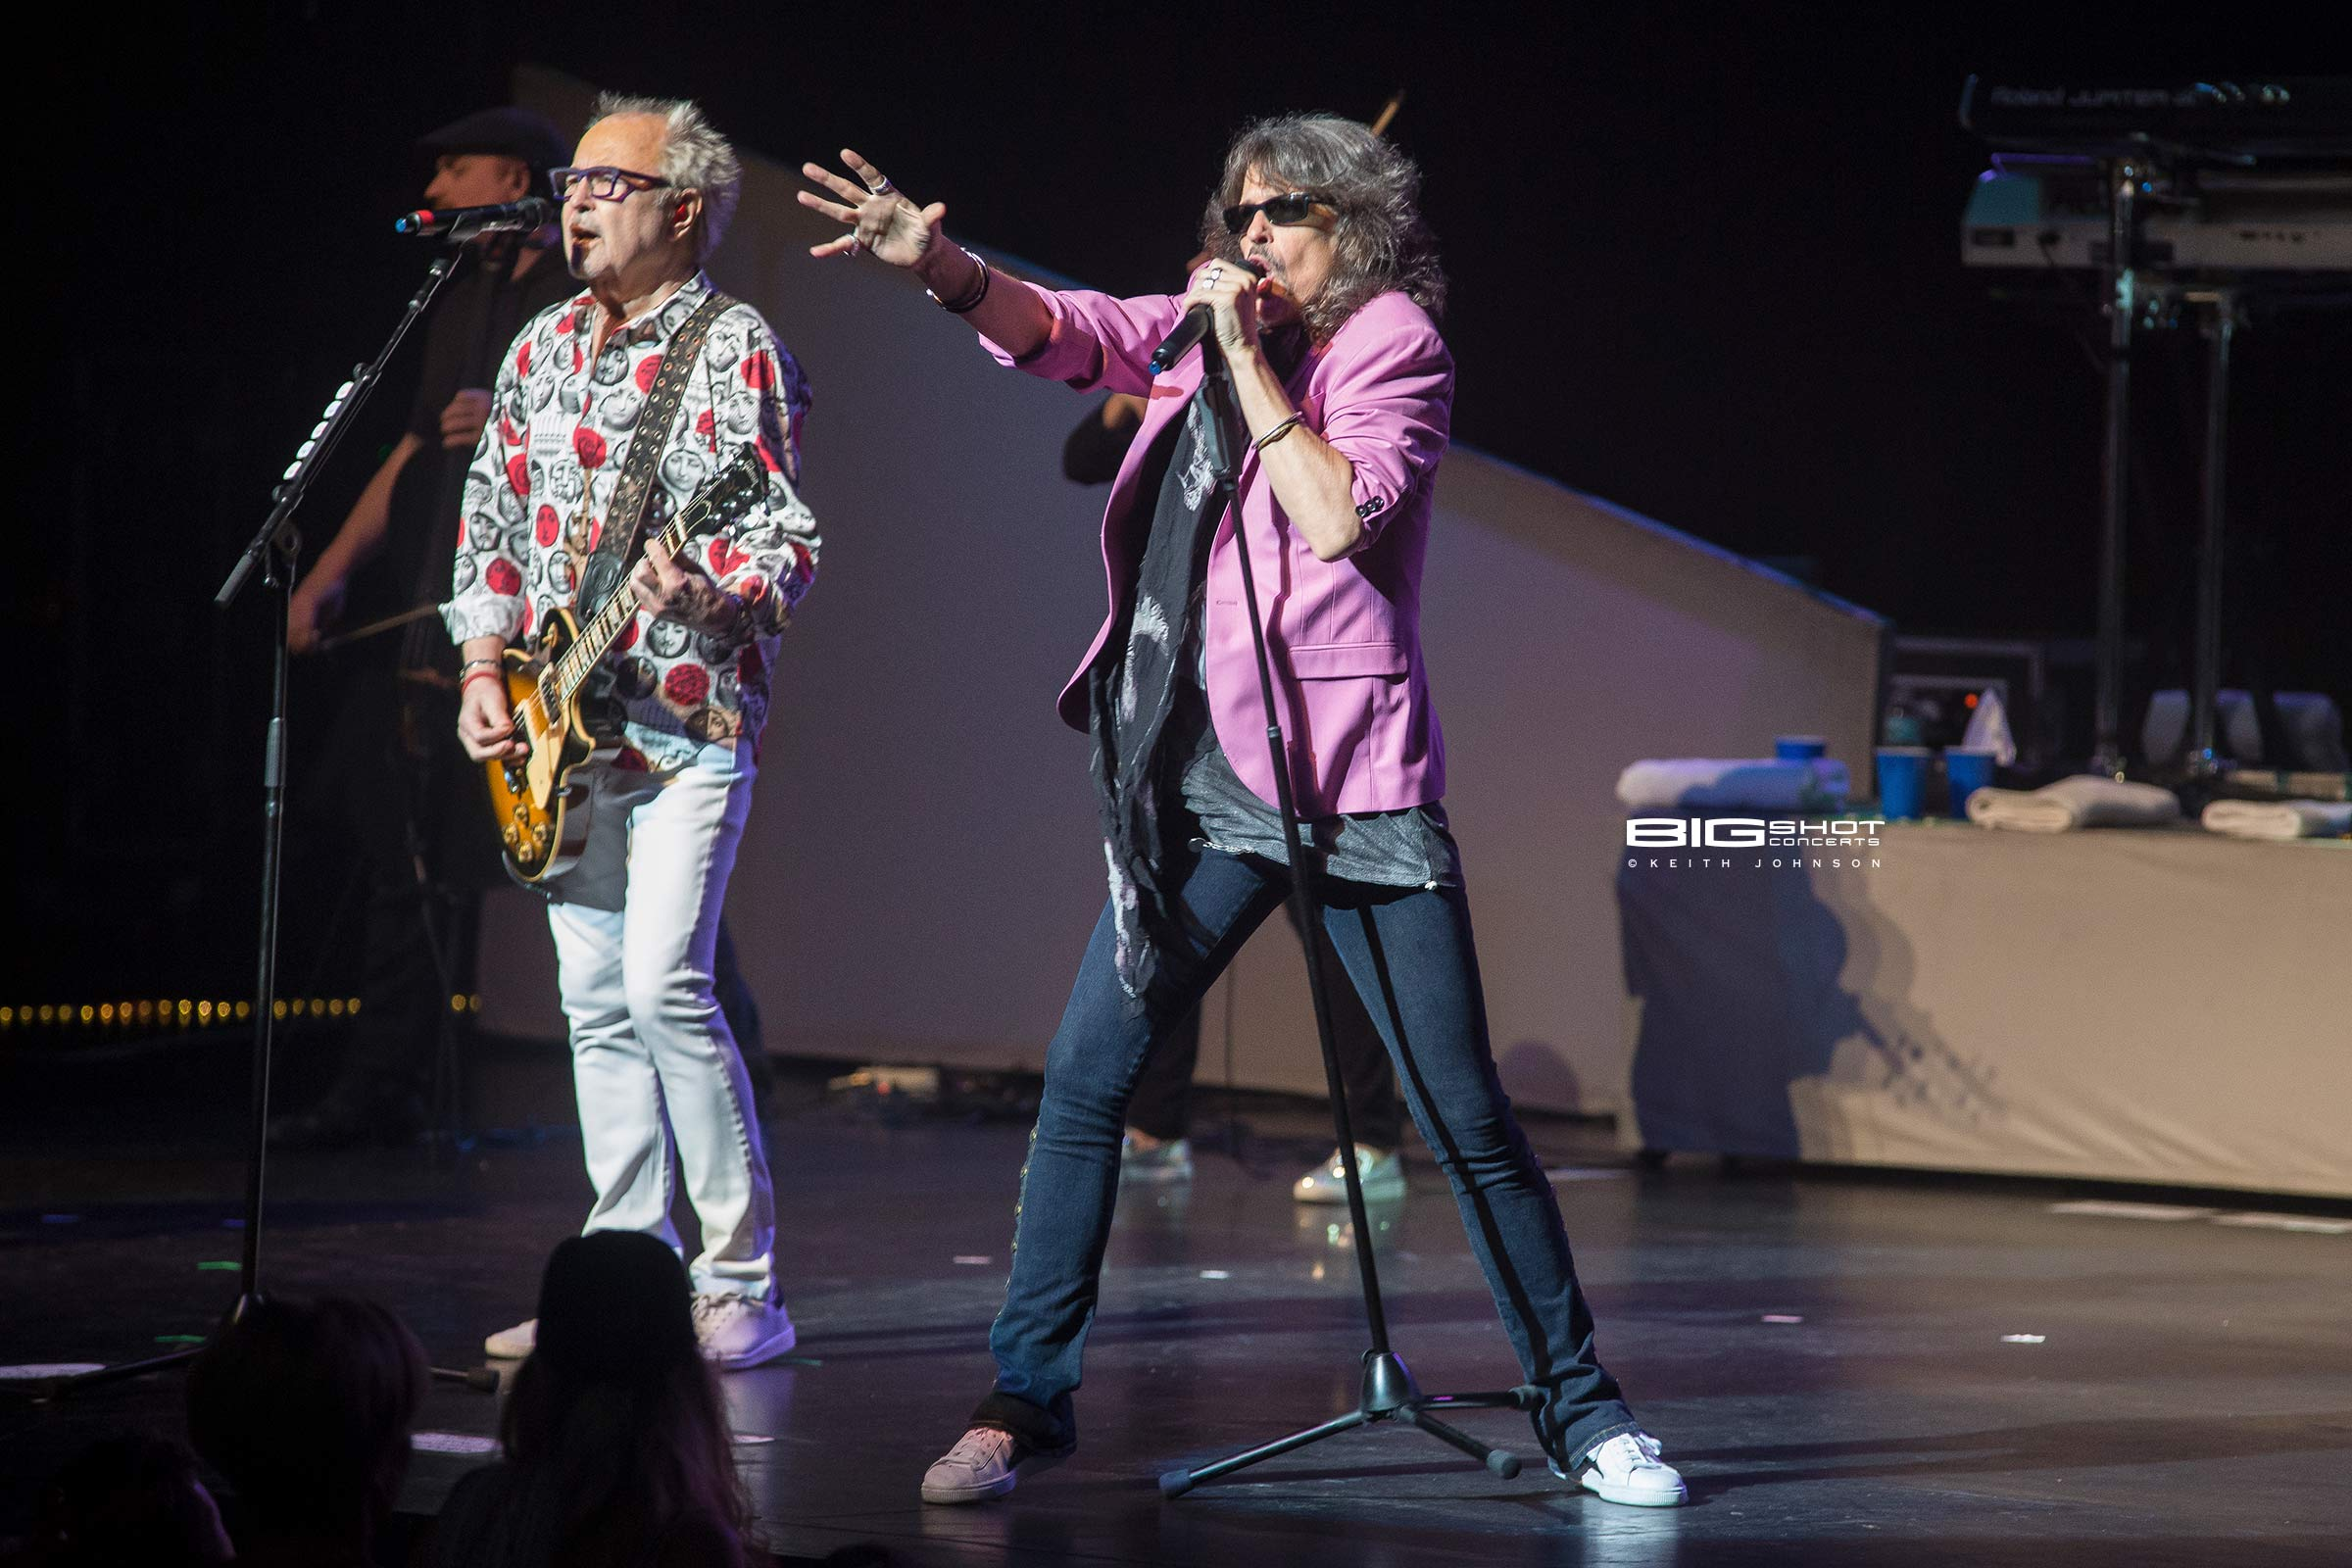 Guitarist Mick Jones and singer Kelly Hansen of Foreigner